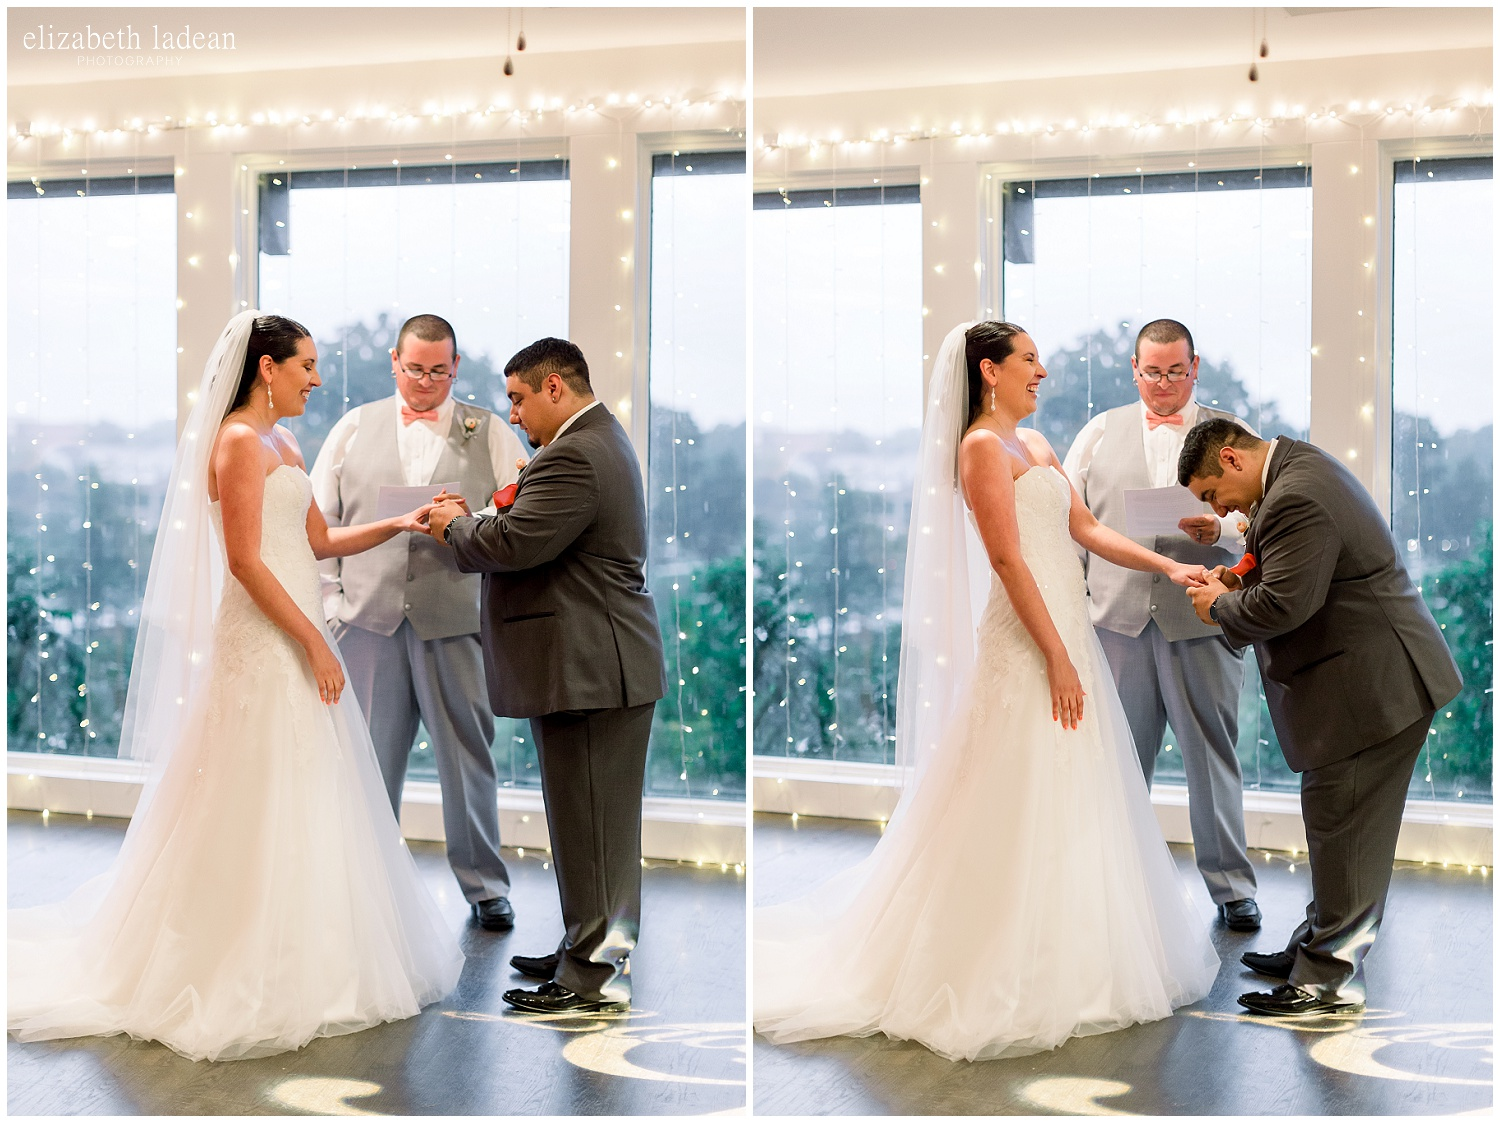 -behind-the-scenes-of-a-wedding-photographer-2018-elizabeth-ladean-photography-photo_3574.jpg